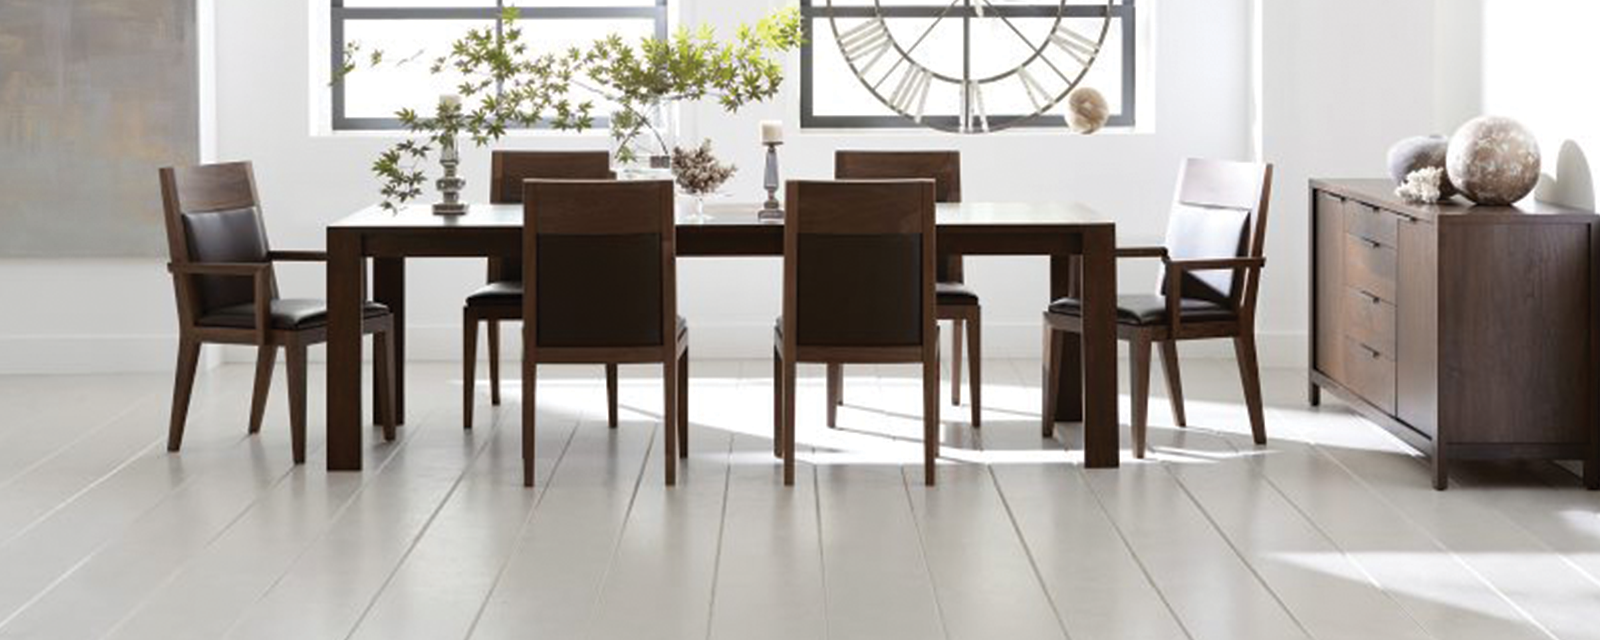 Showroom It Rignano Flaminio six popular types of calgary dining room chairs to consider